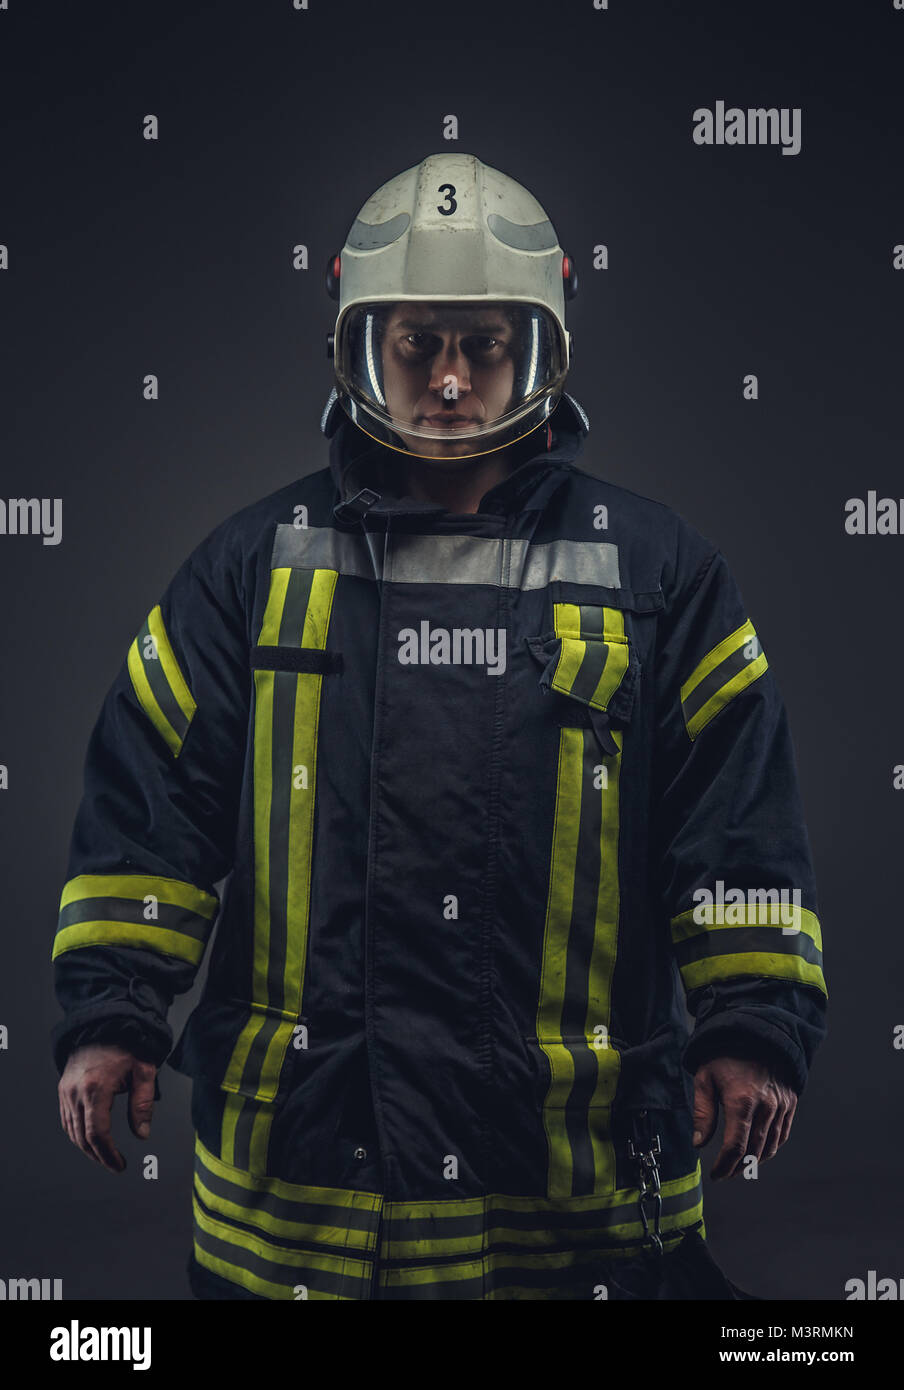 Picture of firefighter in uniform. - Stock Image